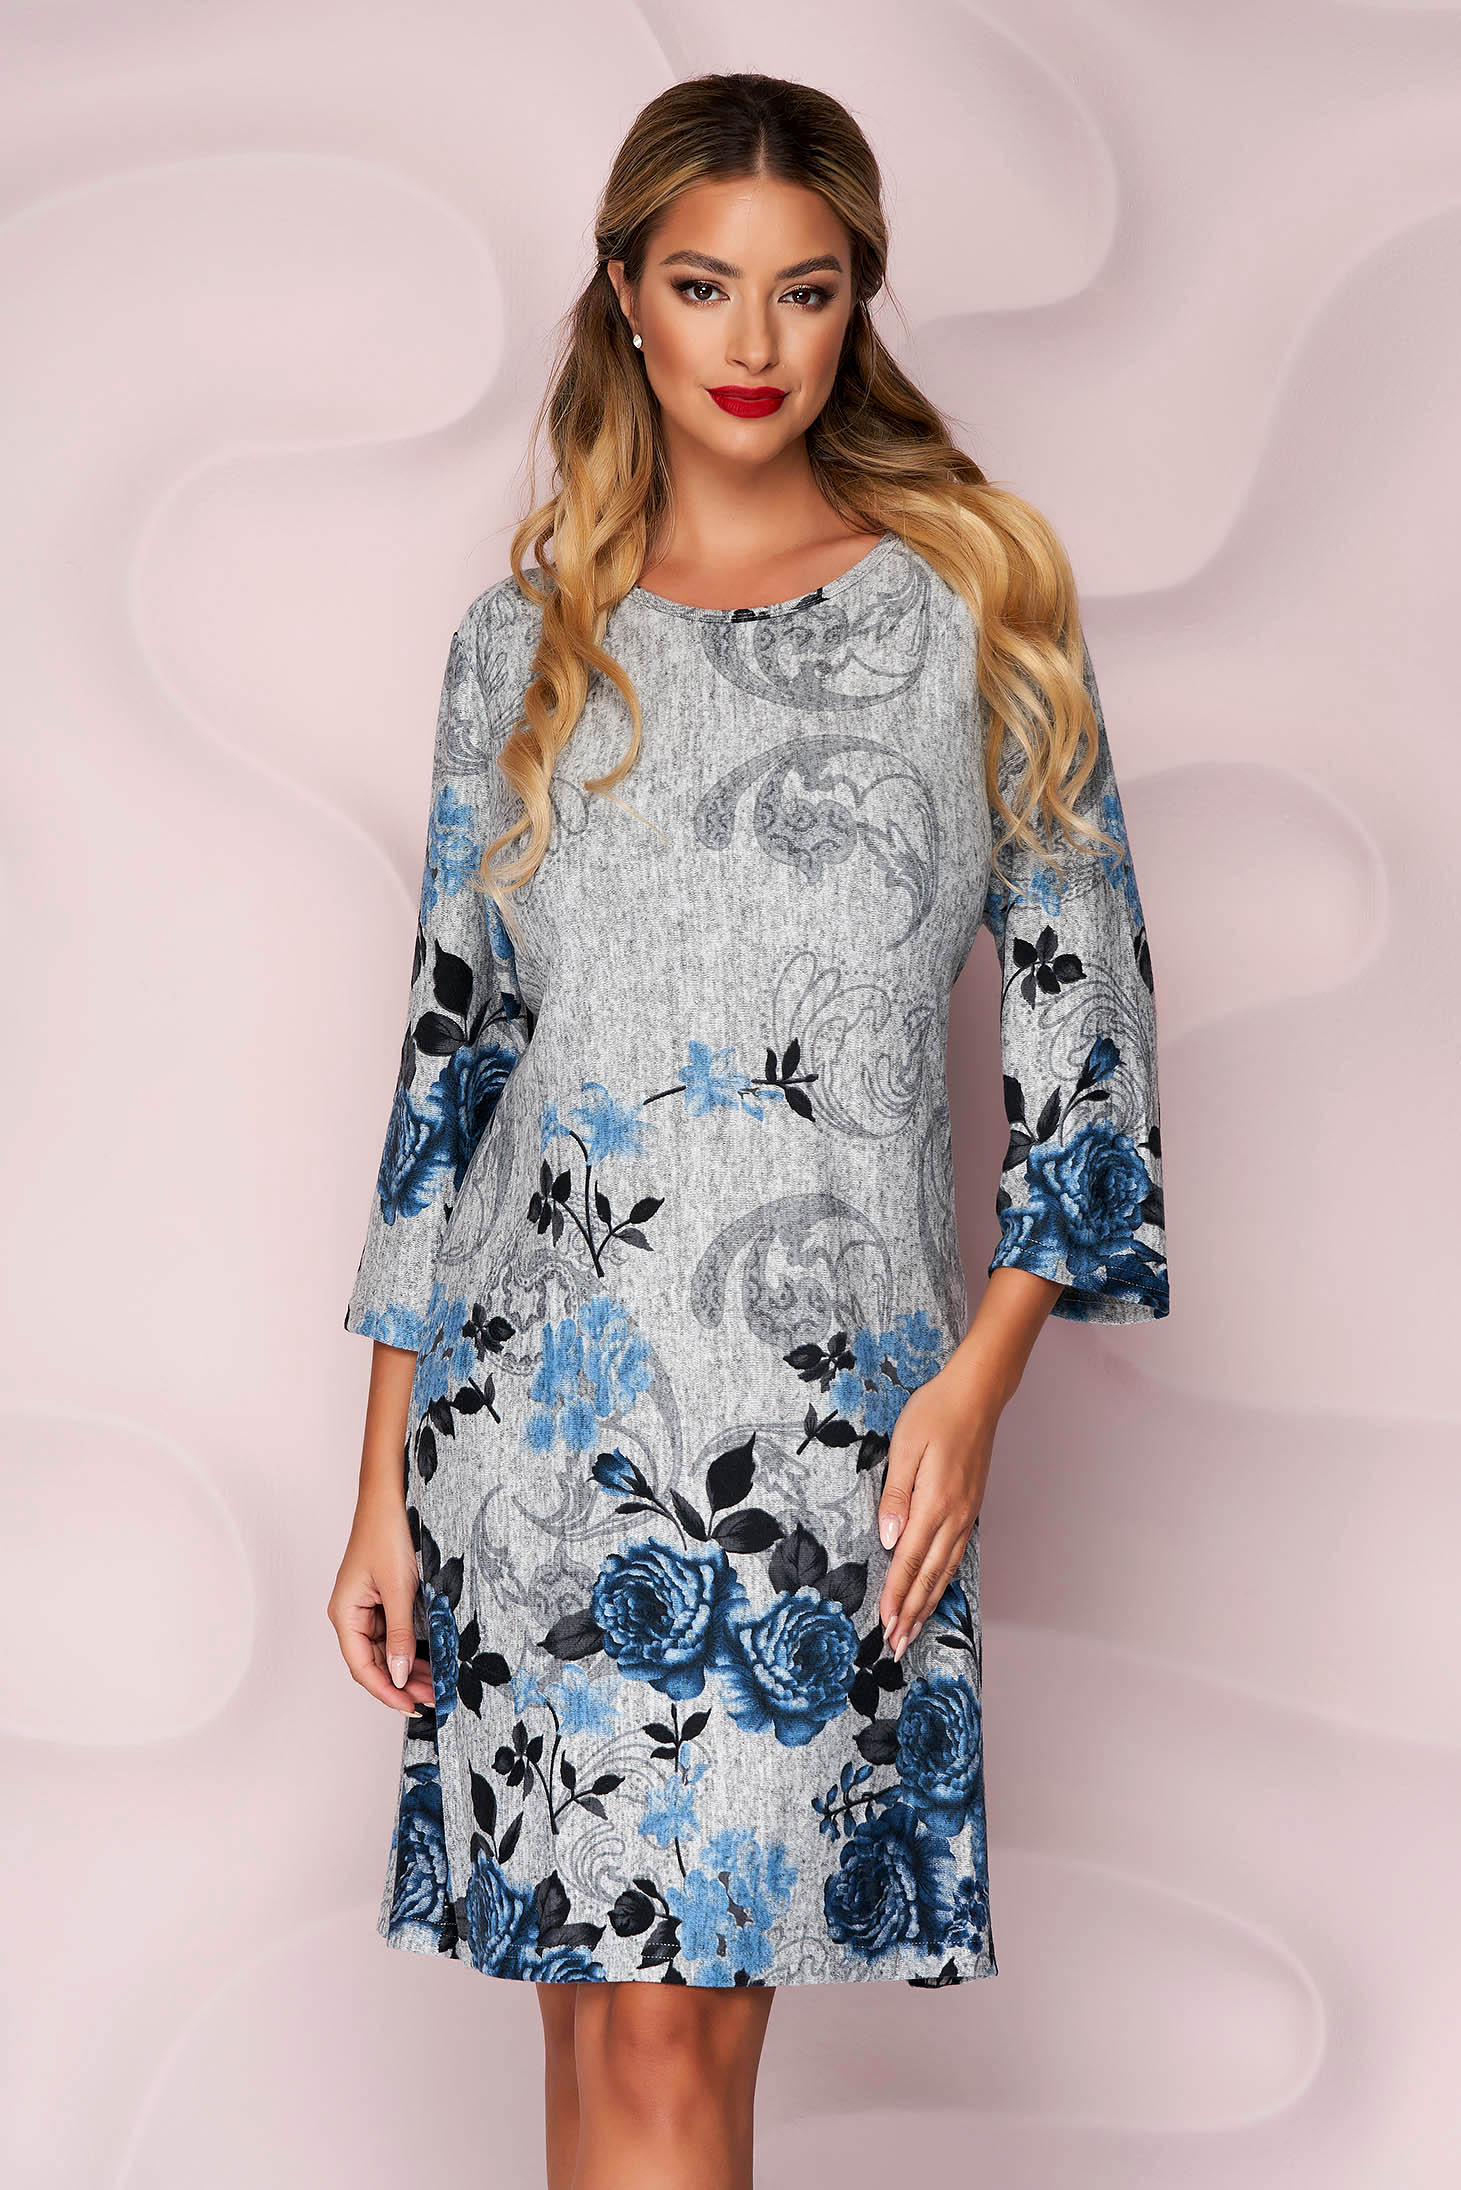 Grey dress straight knitted thin fabric from elastic fabric with floral print